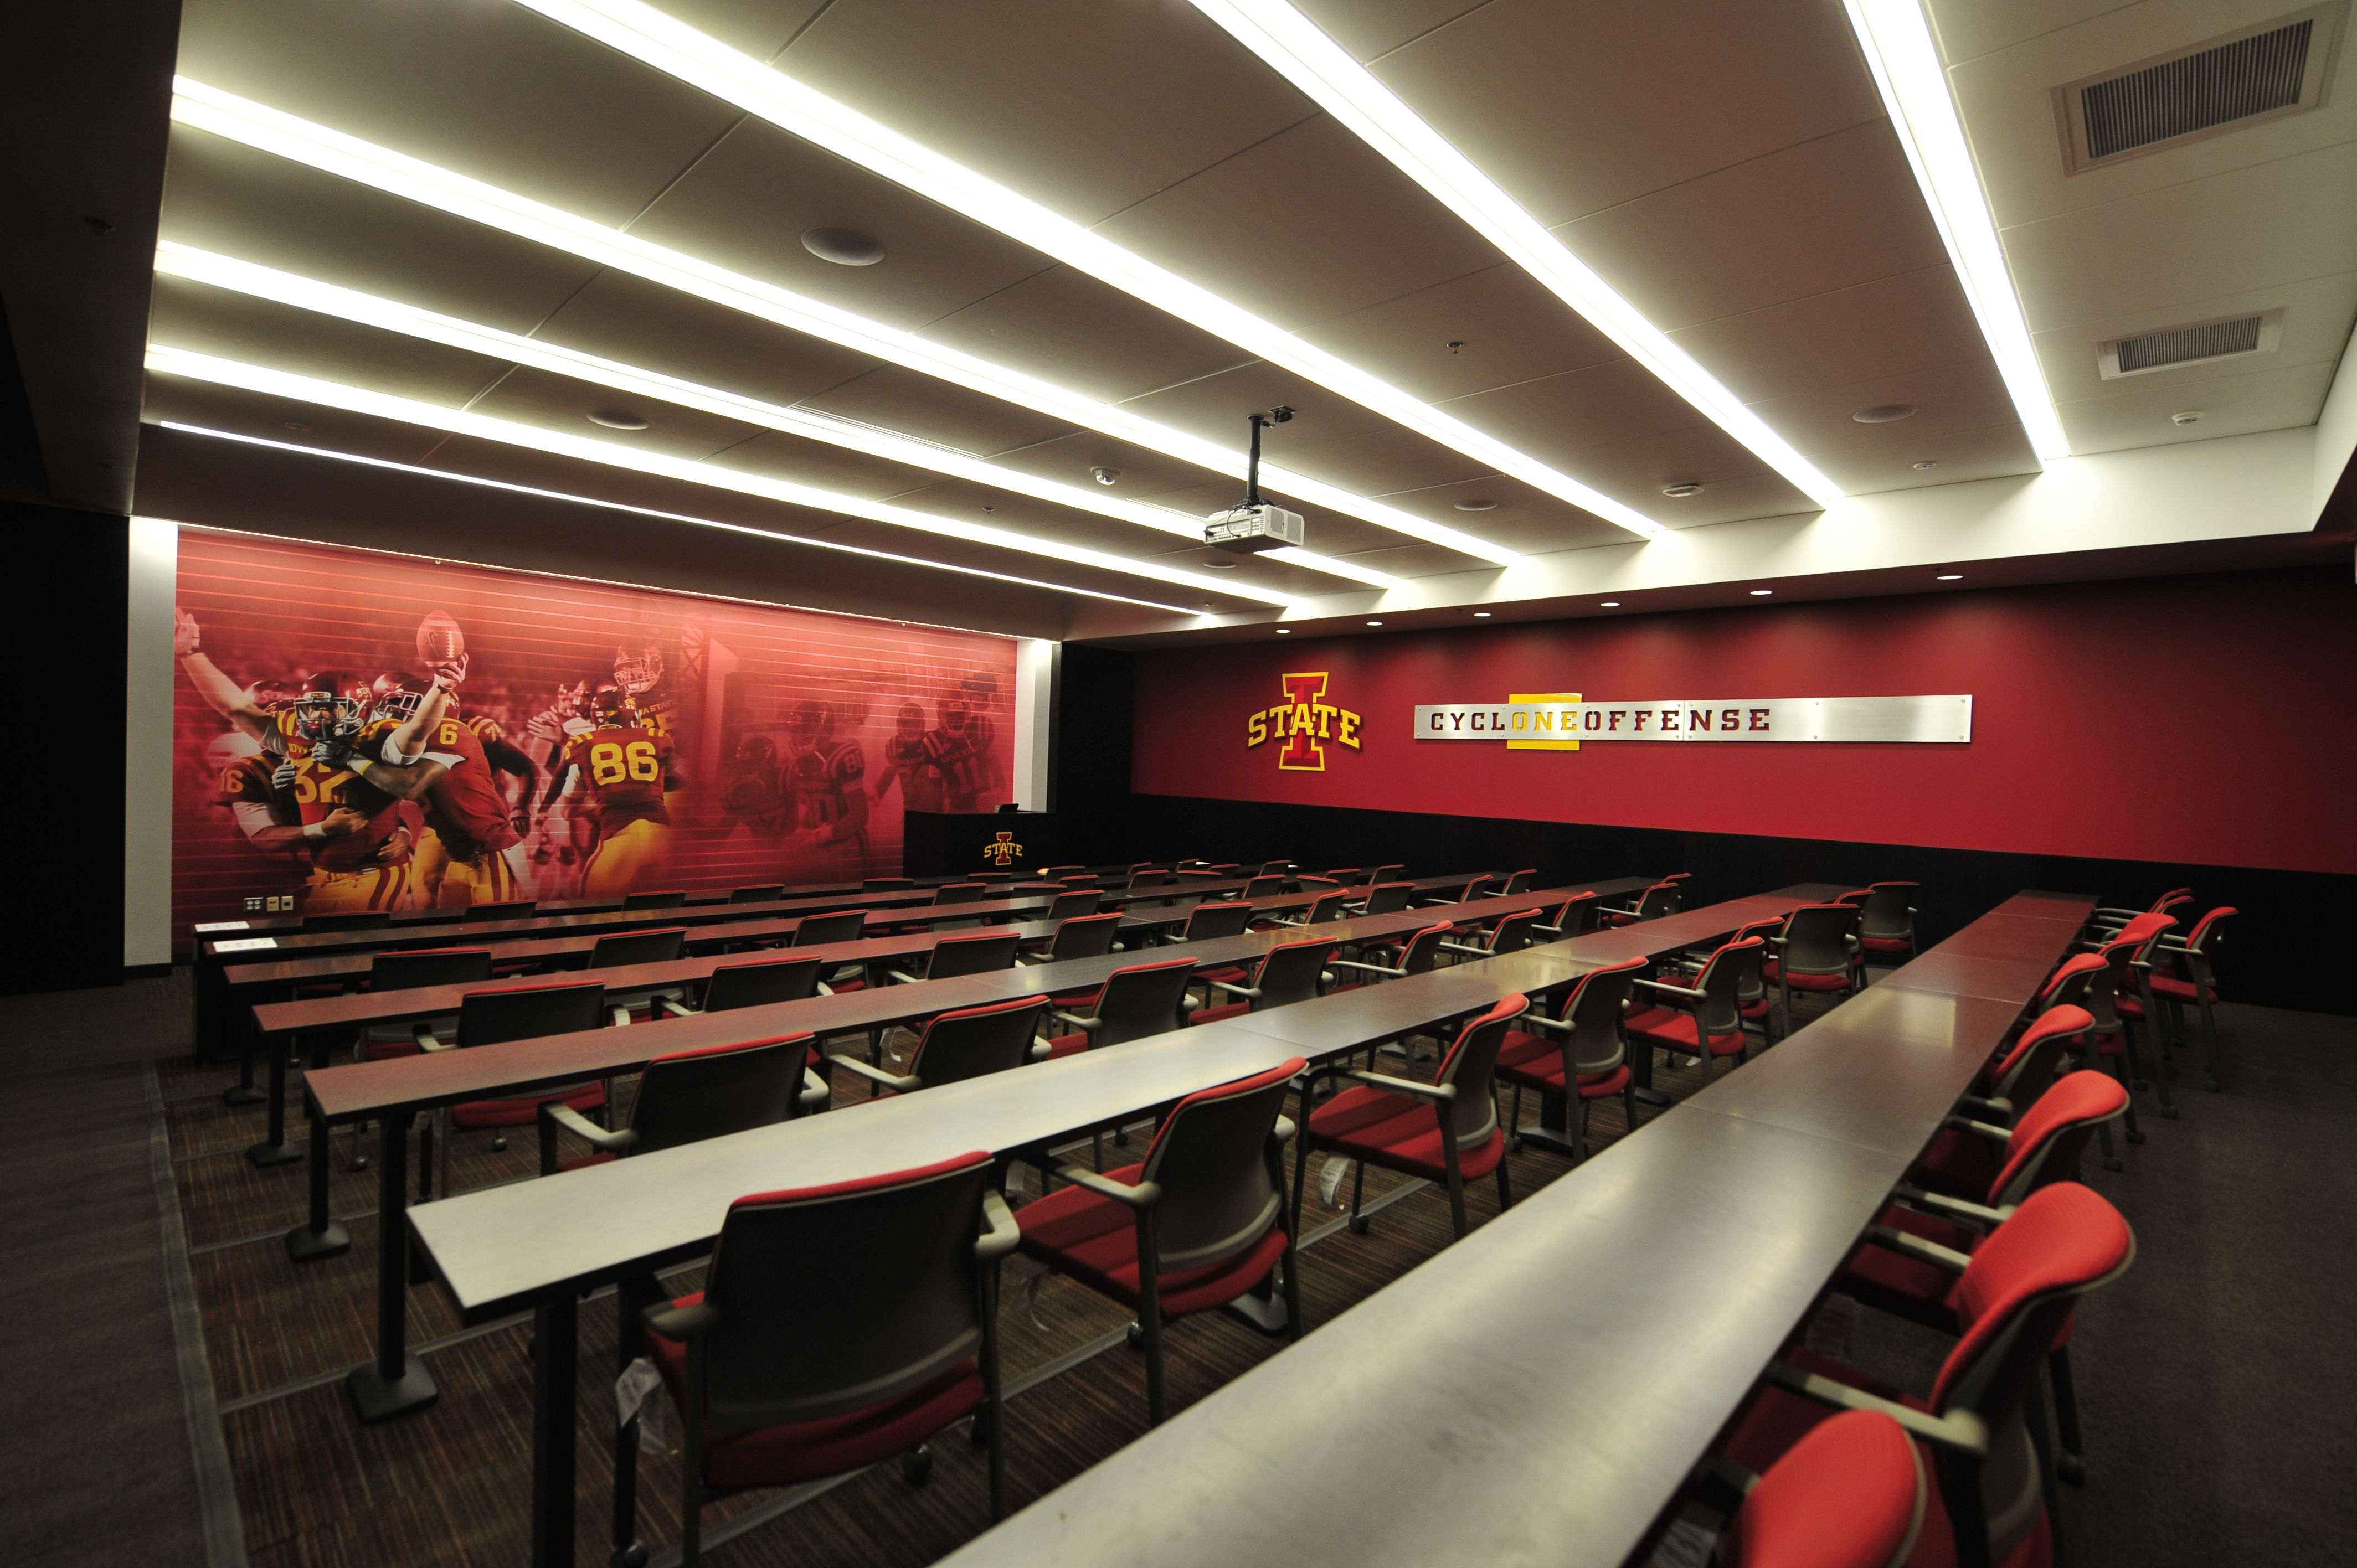 A Peek Inside Of A Football Meeting Room At The Bergstrom Football Complex Cyclones Meeting Room Iowa State Home Decor